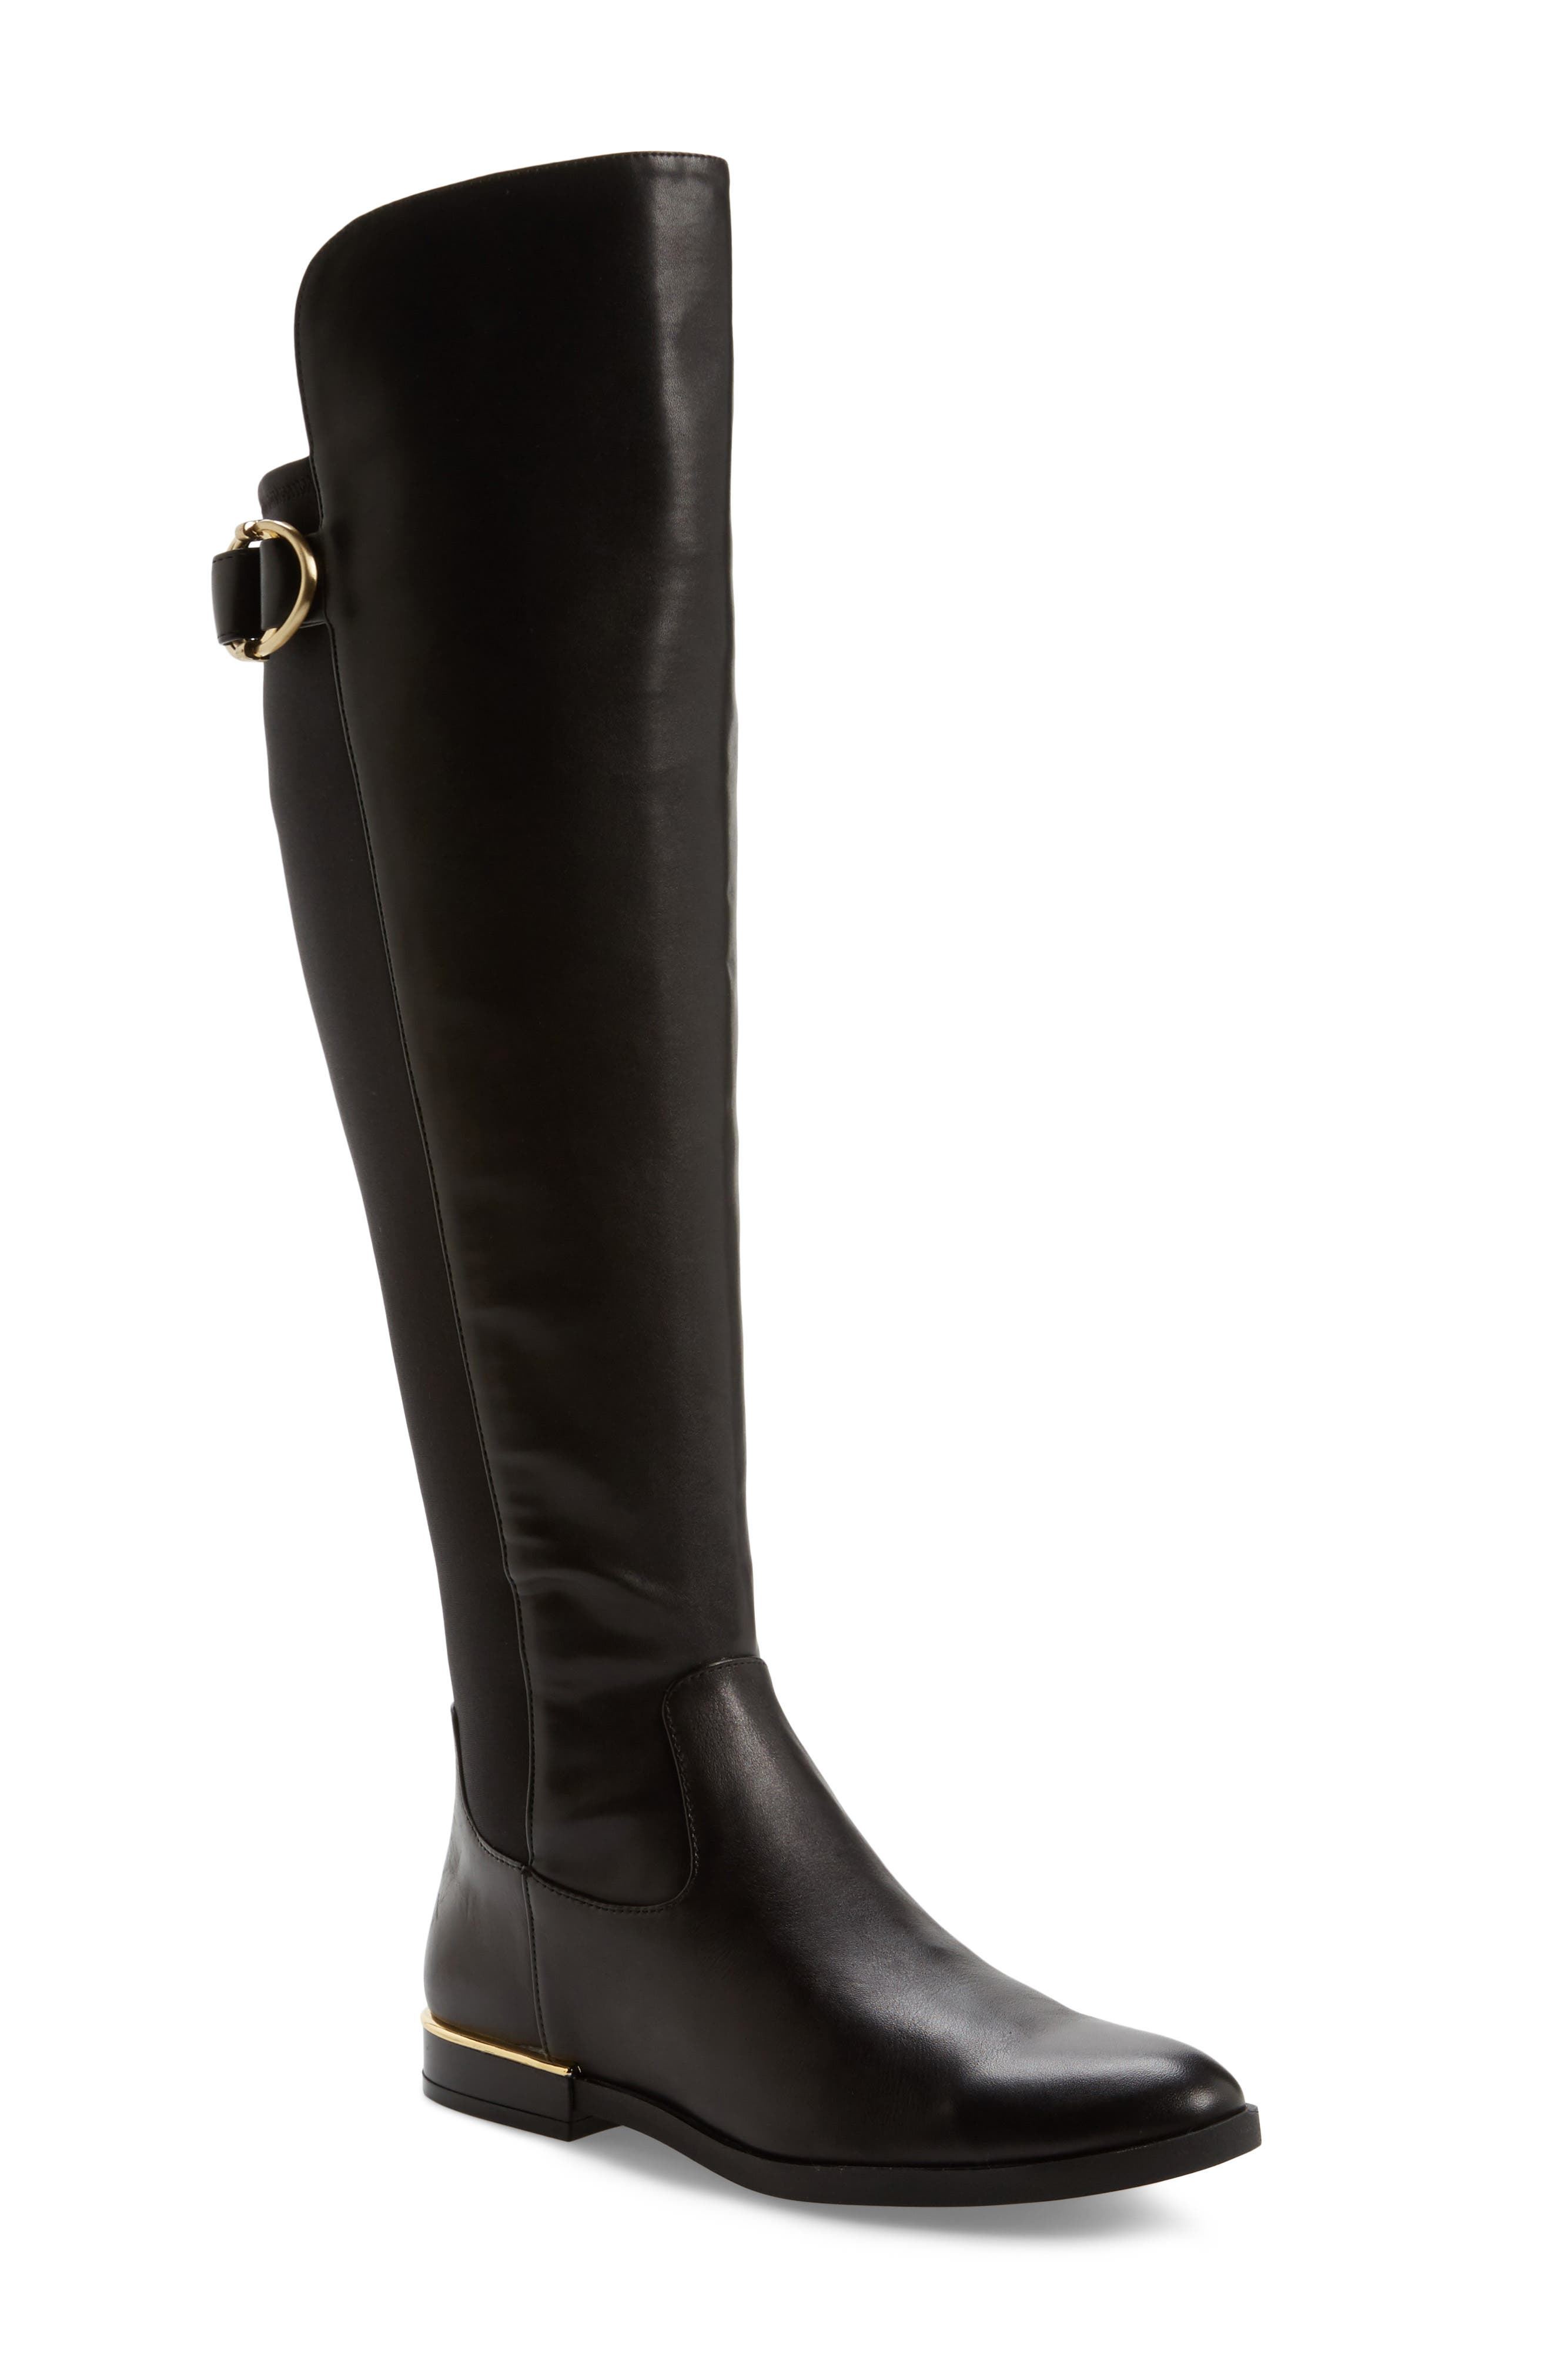 Priscila Over the Knee Boot,                         Main,                         color, Black Leather